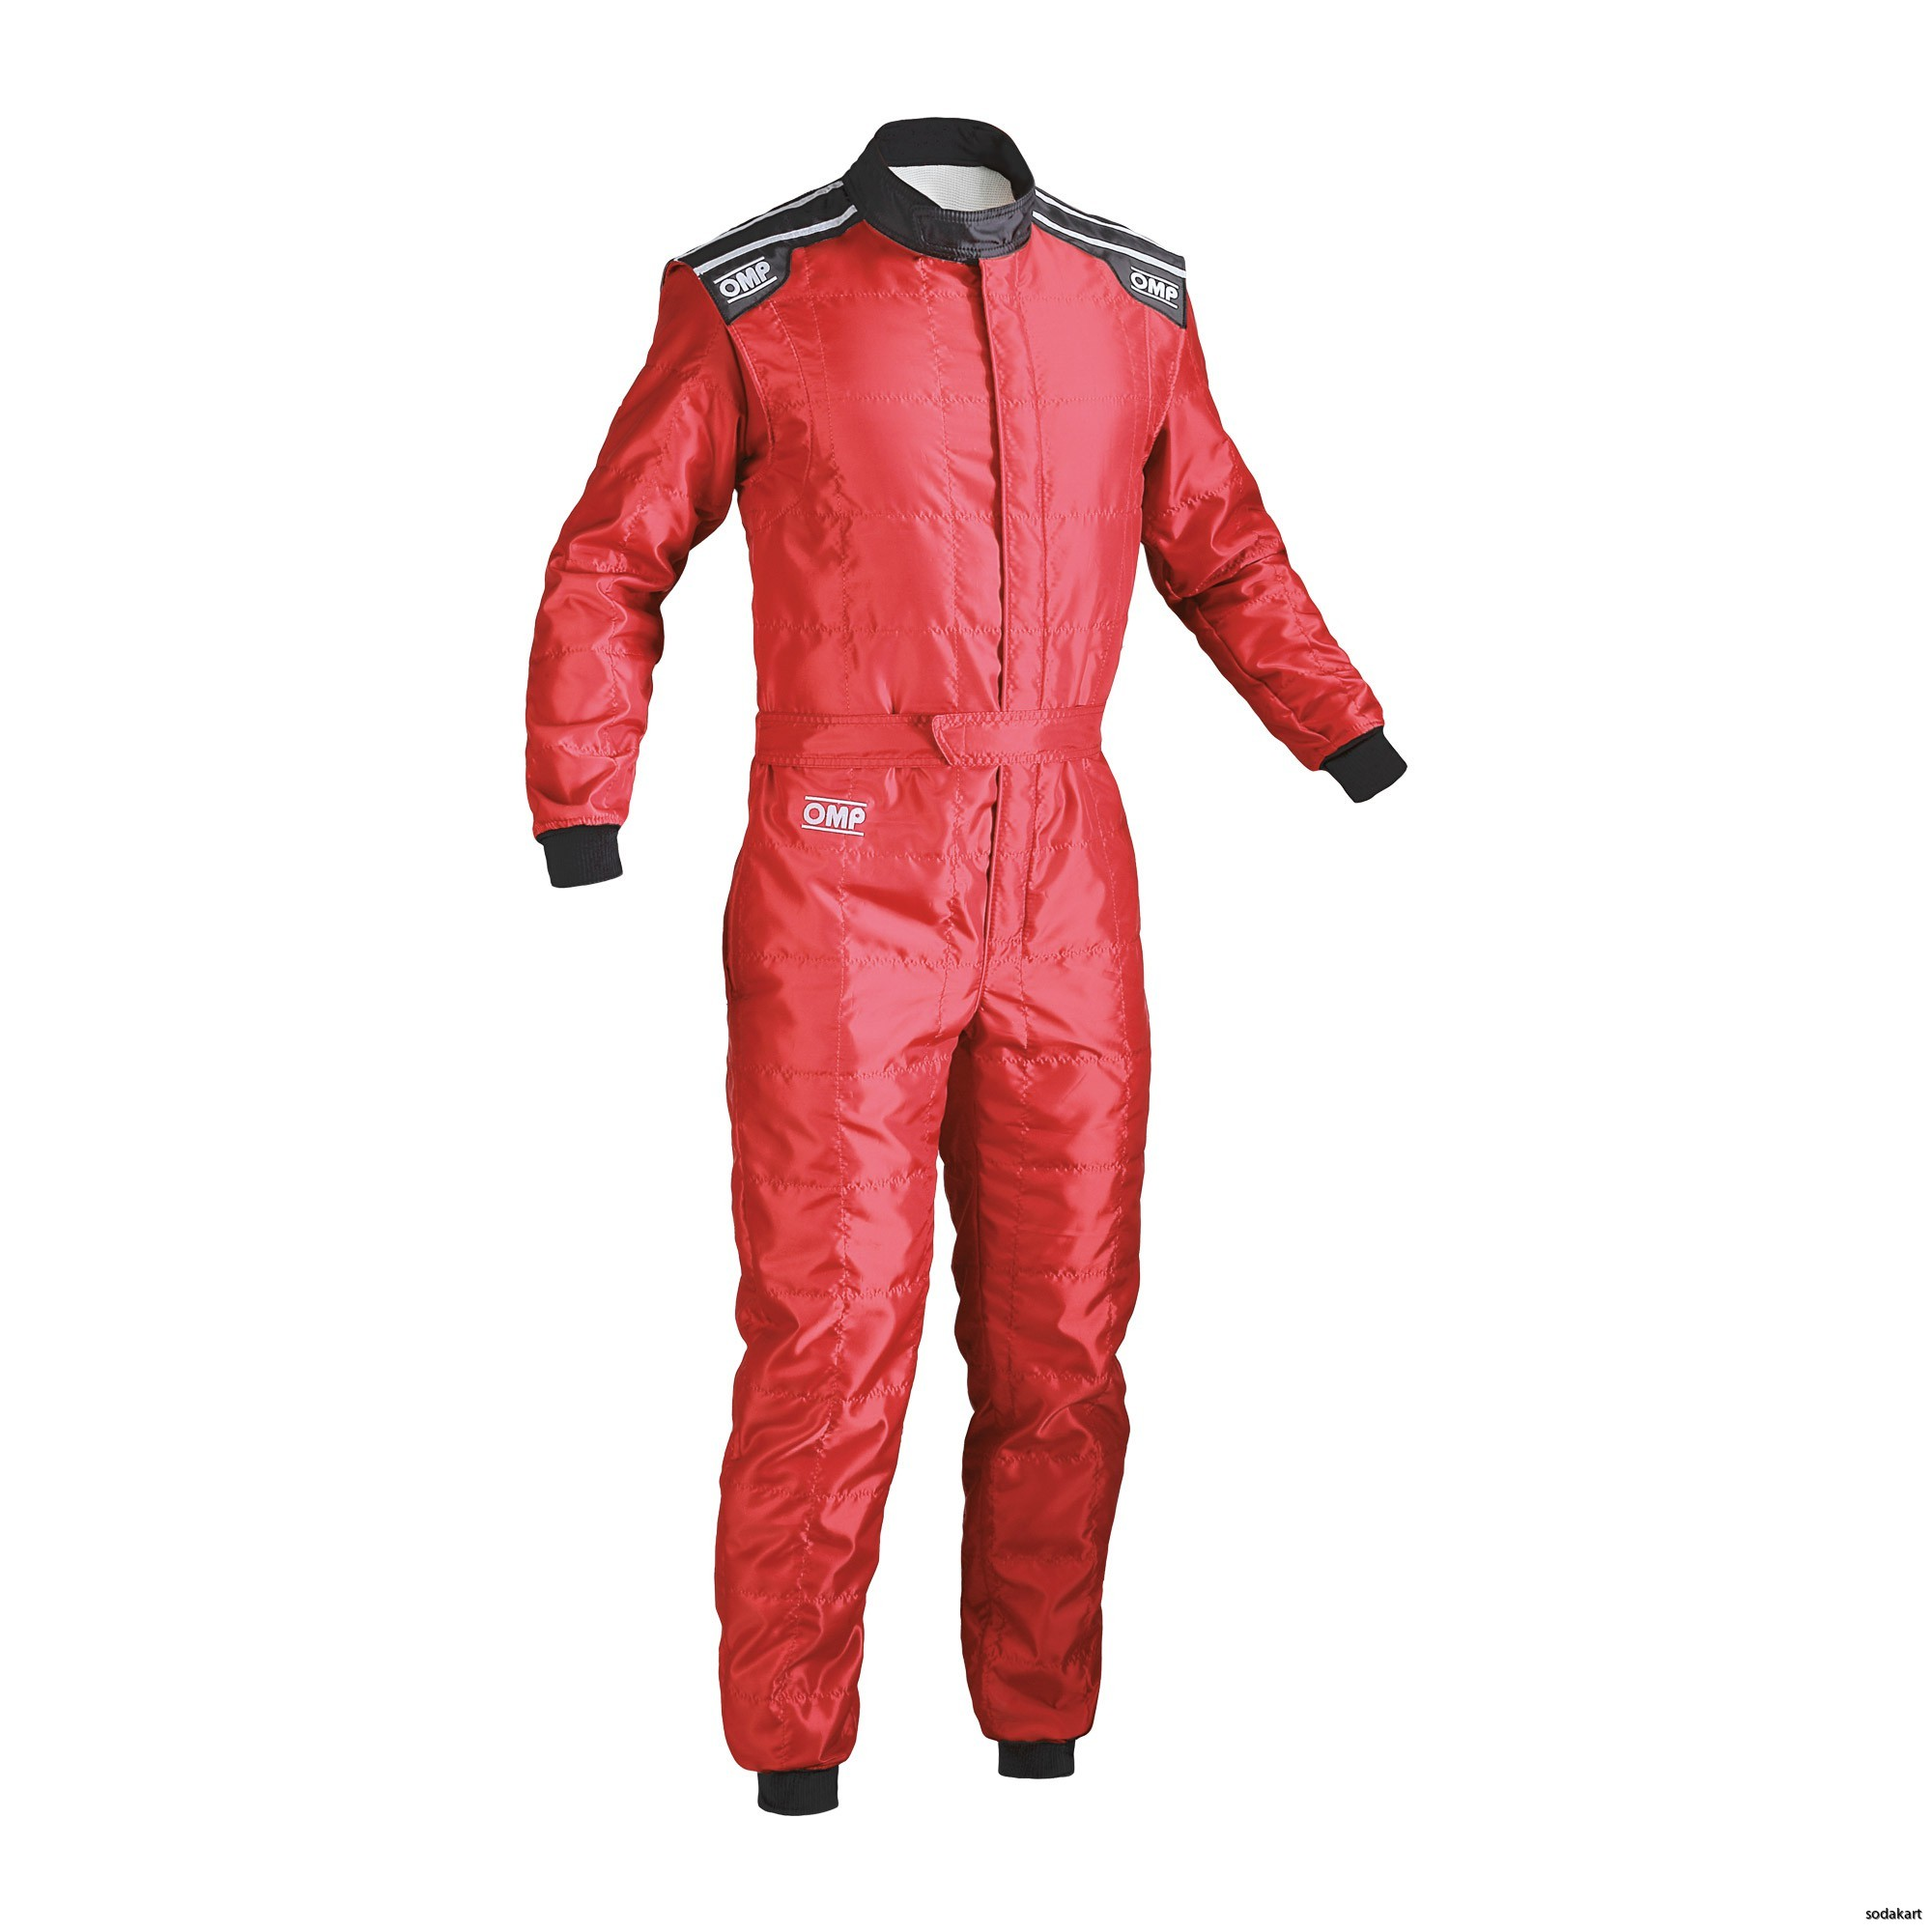 L_ks4suit_red_37_1_KK01724